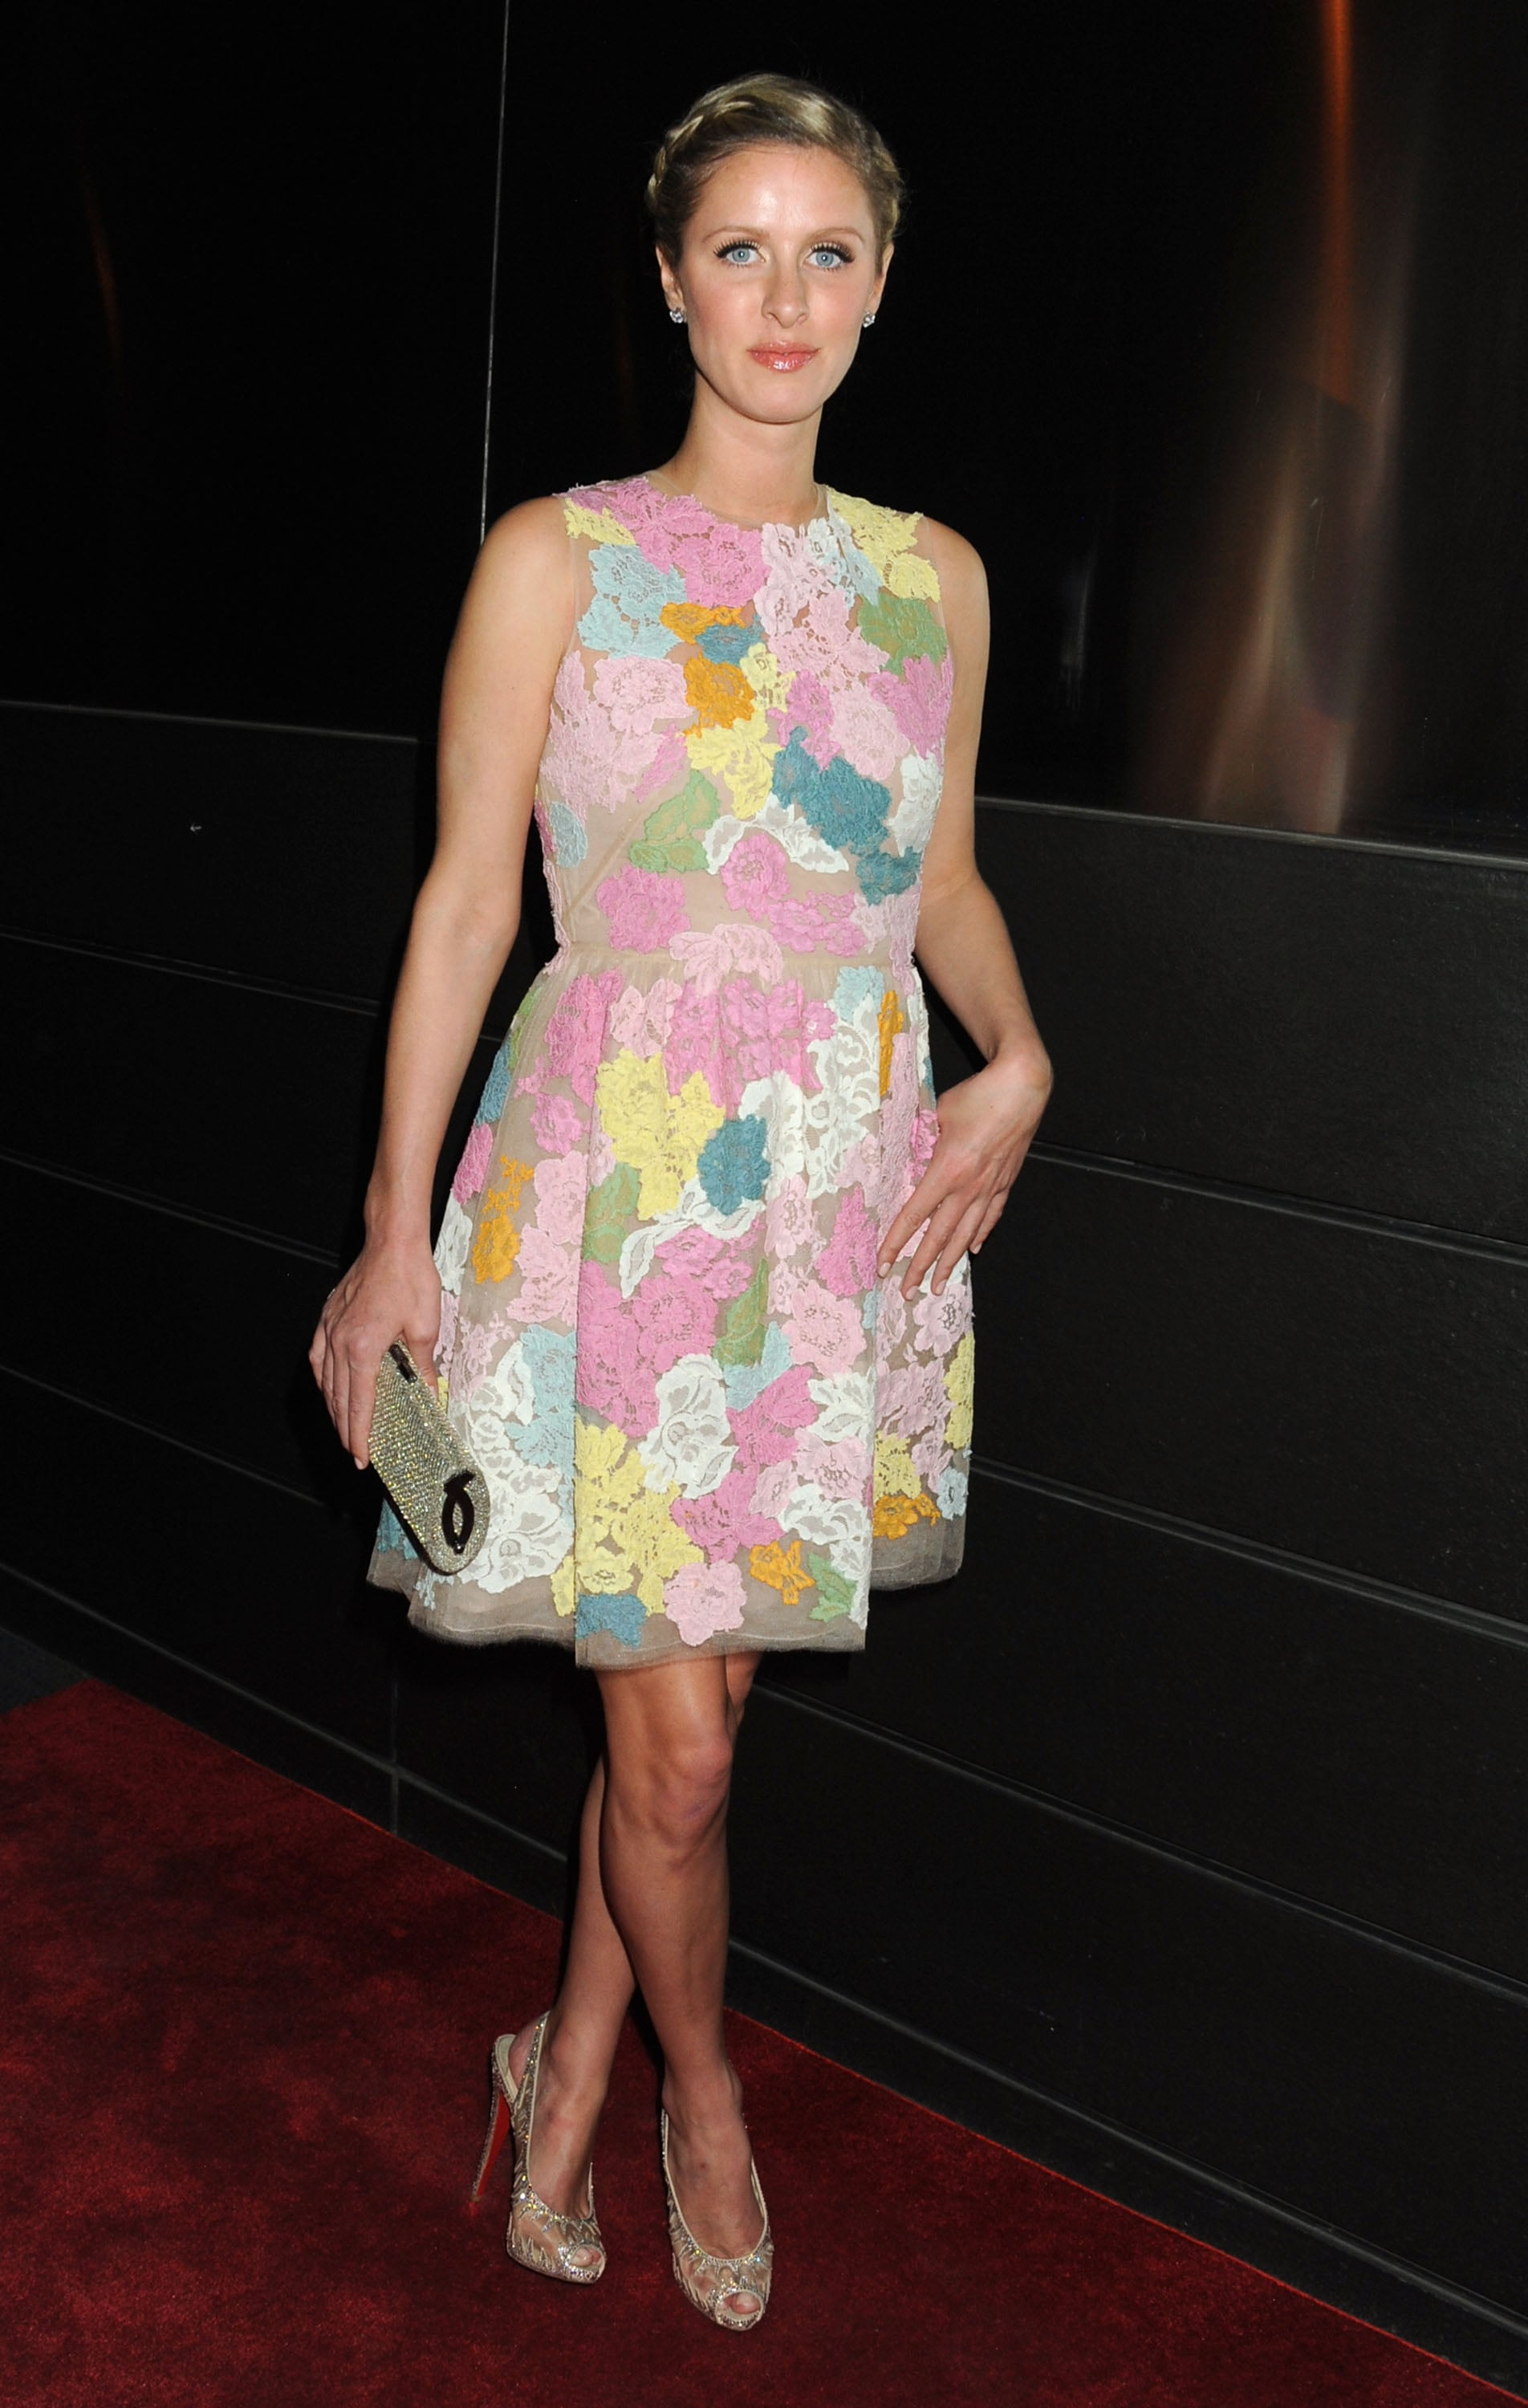 louis vuitton red bottom heels - Nicky Hilton donned a colorful floral dress with peep-toe ...